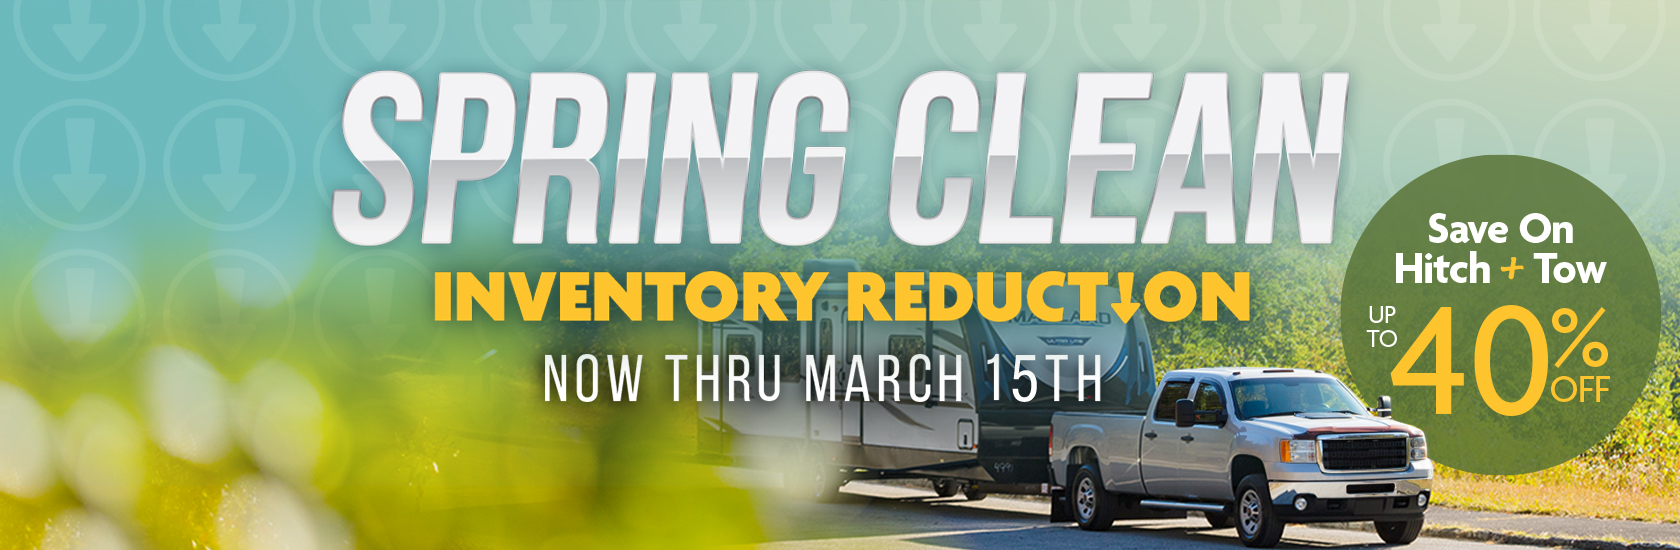 Spring Clean Inventory Reduction